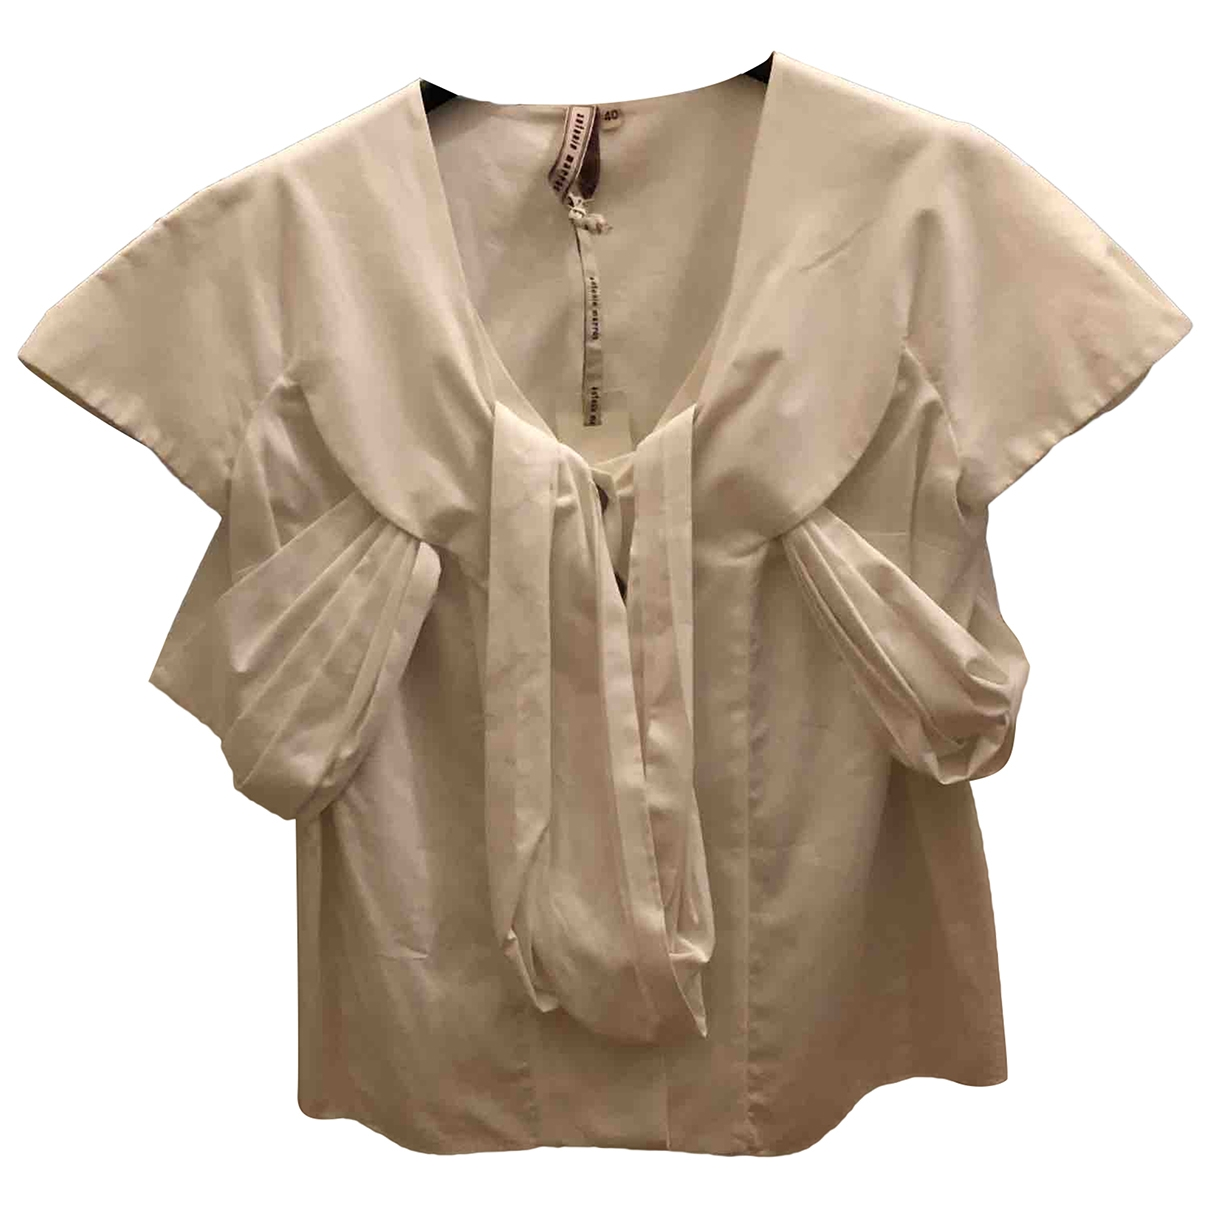 Antonio Marras \N Top in  Weiss Baumwolle